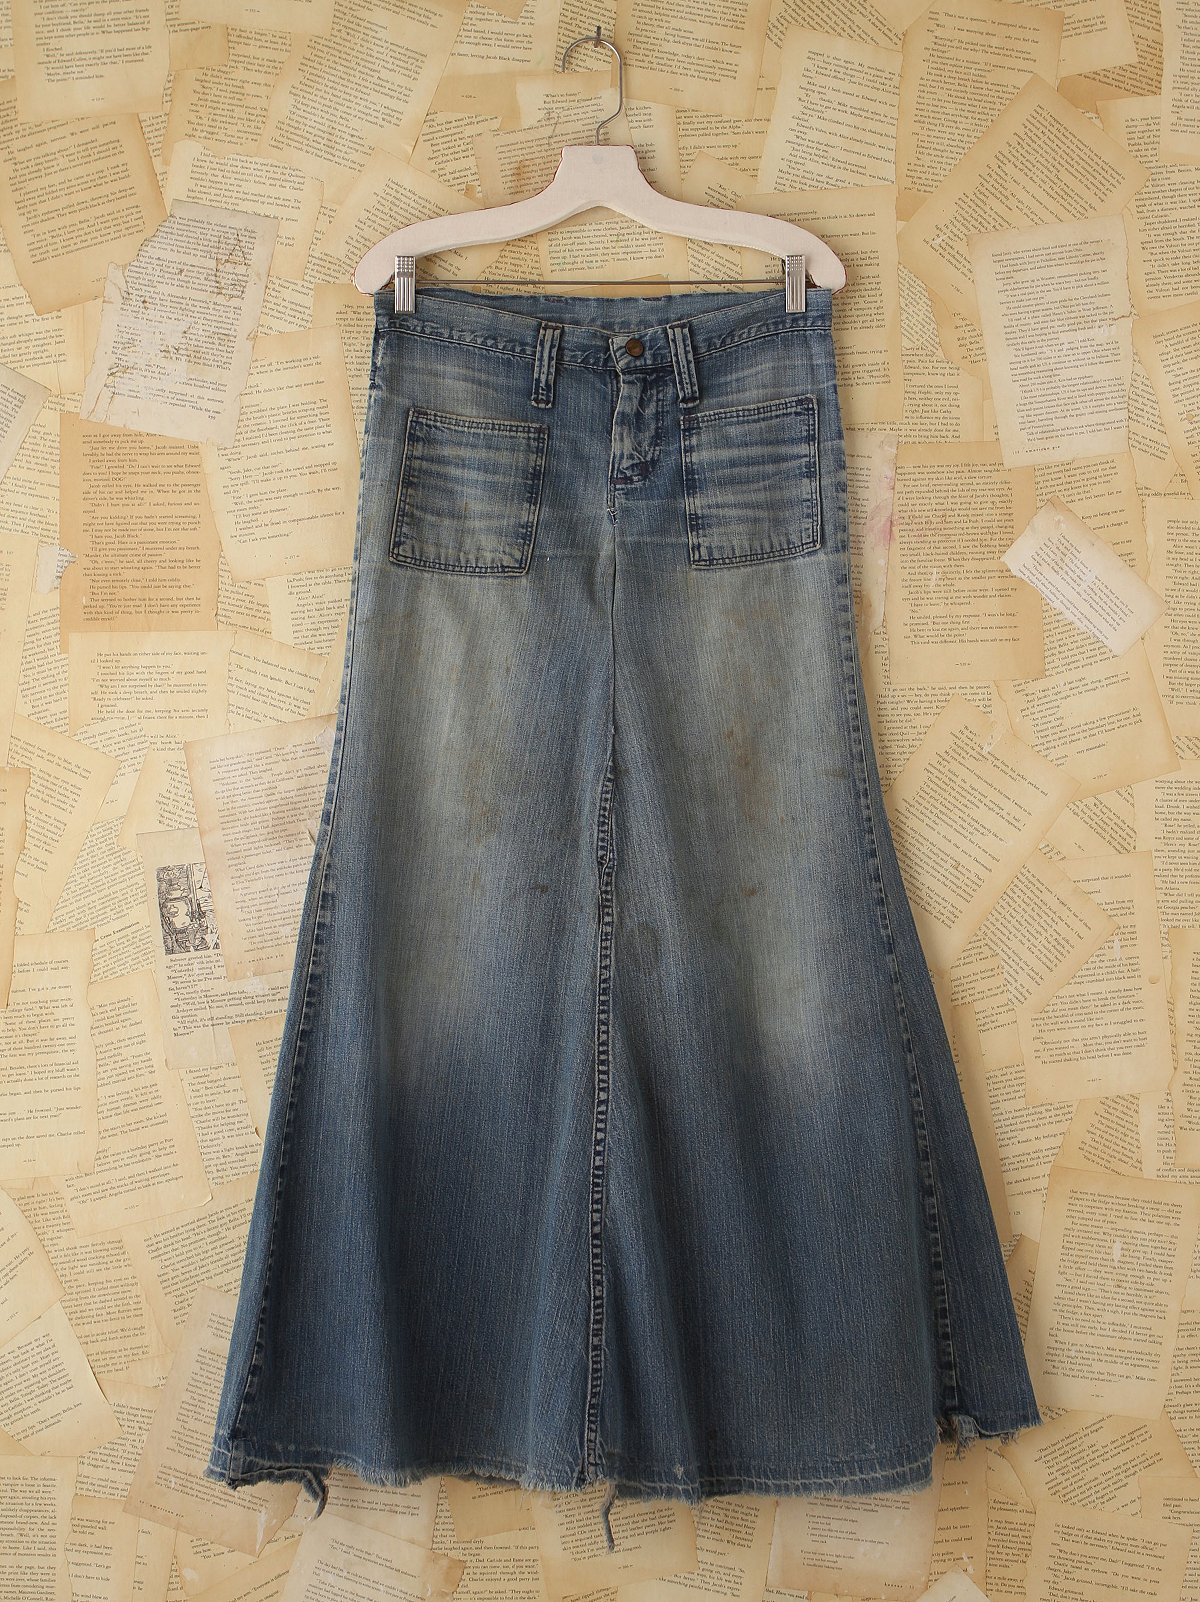 Vintage 1960s Denim Patchwork Skirt